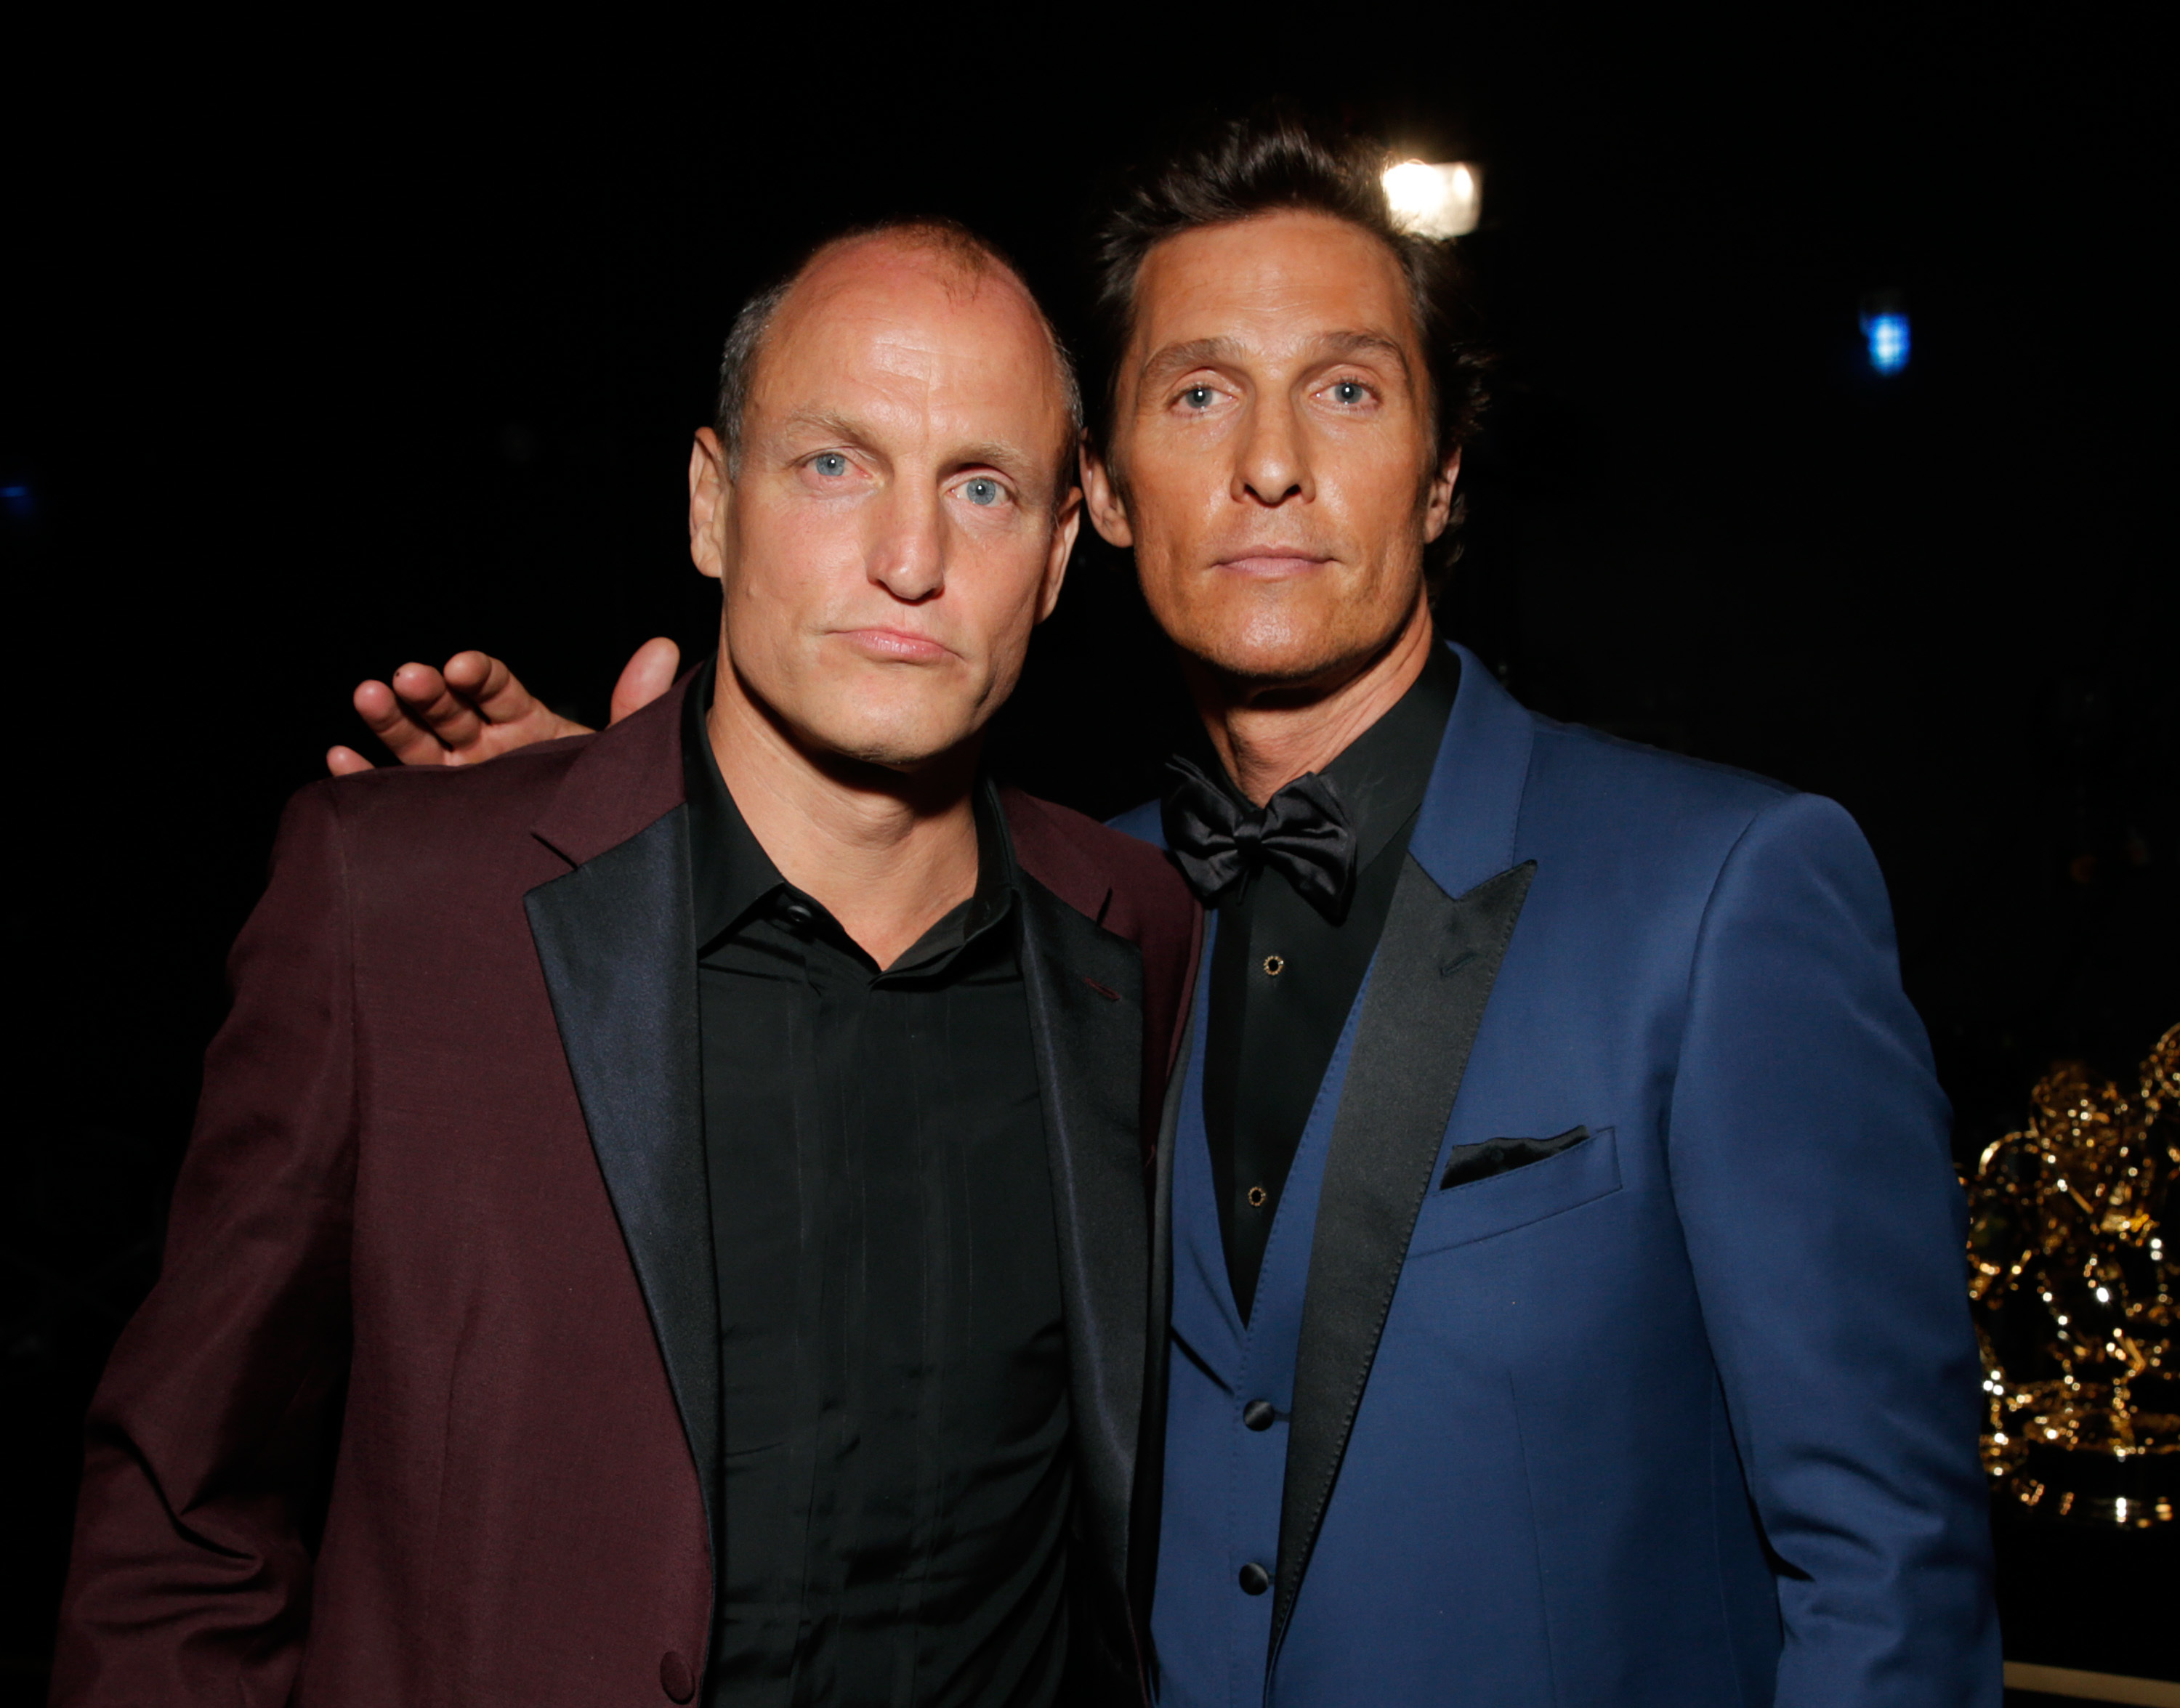 Woody Harrelson and Matthew McConaughey attend the 66th Primetime Emmy Awards at the Nokia Theatre at L.A. Live in Los Angeles on Aug. 25, 2014.